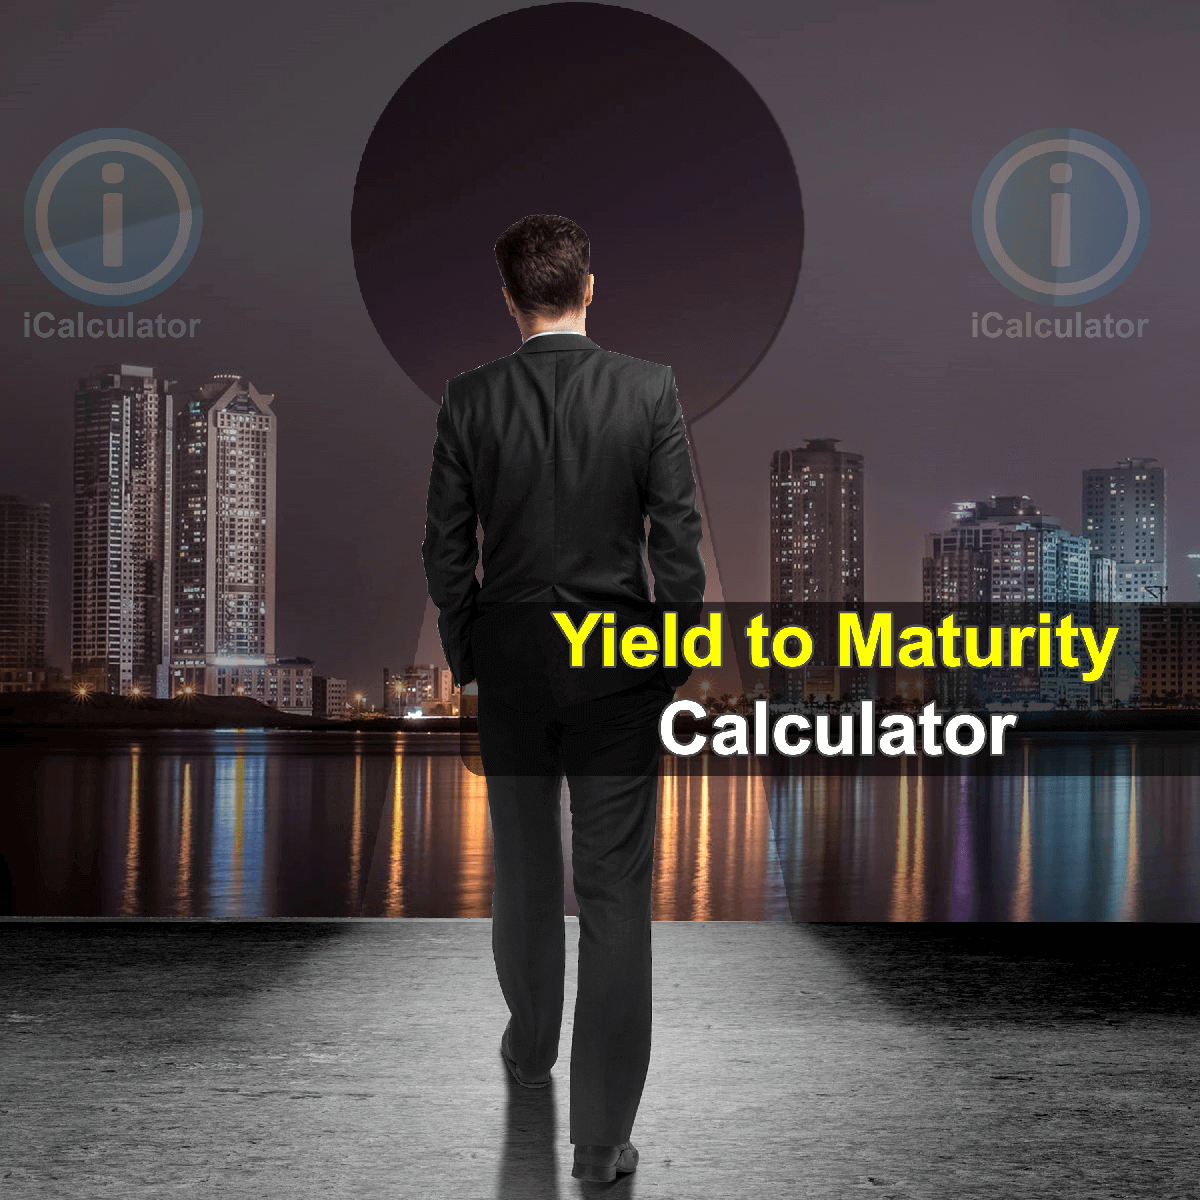 Yield to Maturity Calculator. This image provides details of how to calculate Yield to Maturity using a calculator and notepad. By using the Yield to Maturity formula, the Yield to Maturity Calculator provides a true calculation of the rate of return on long term or a fixed rate security investments